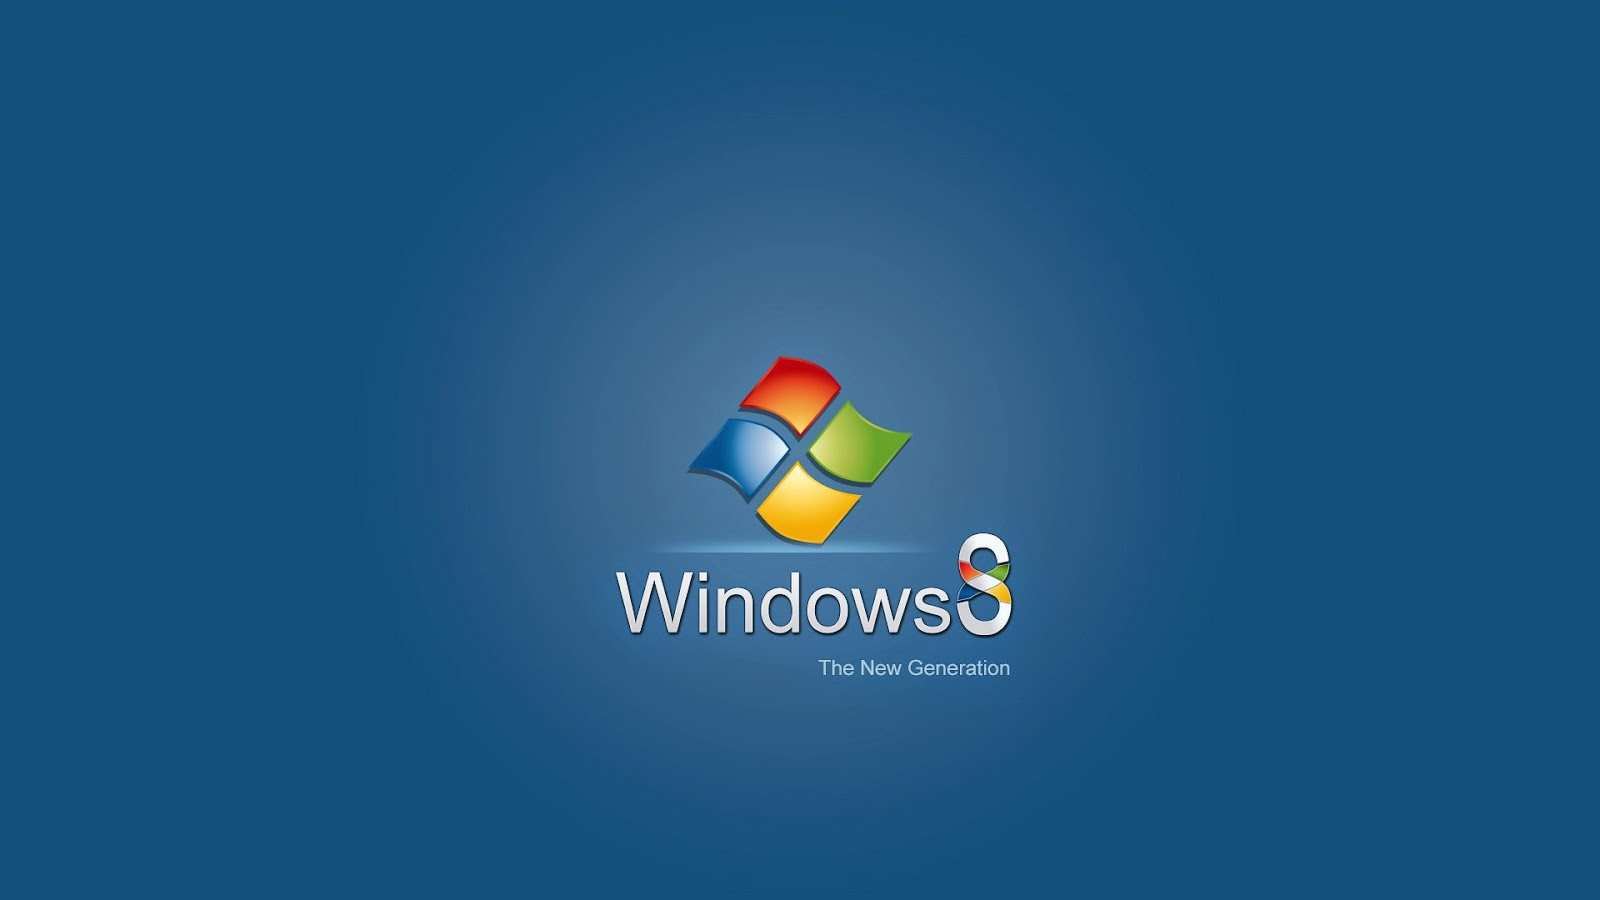 How to Install Windows 8 1